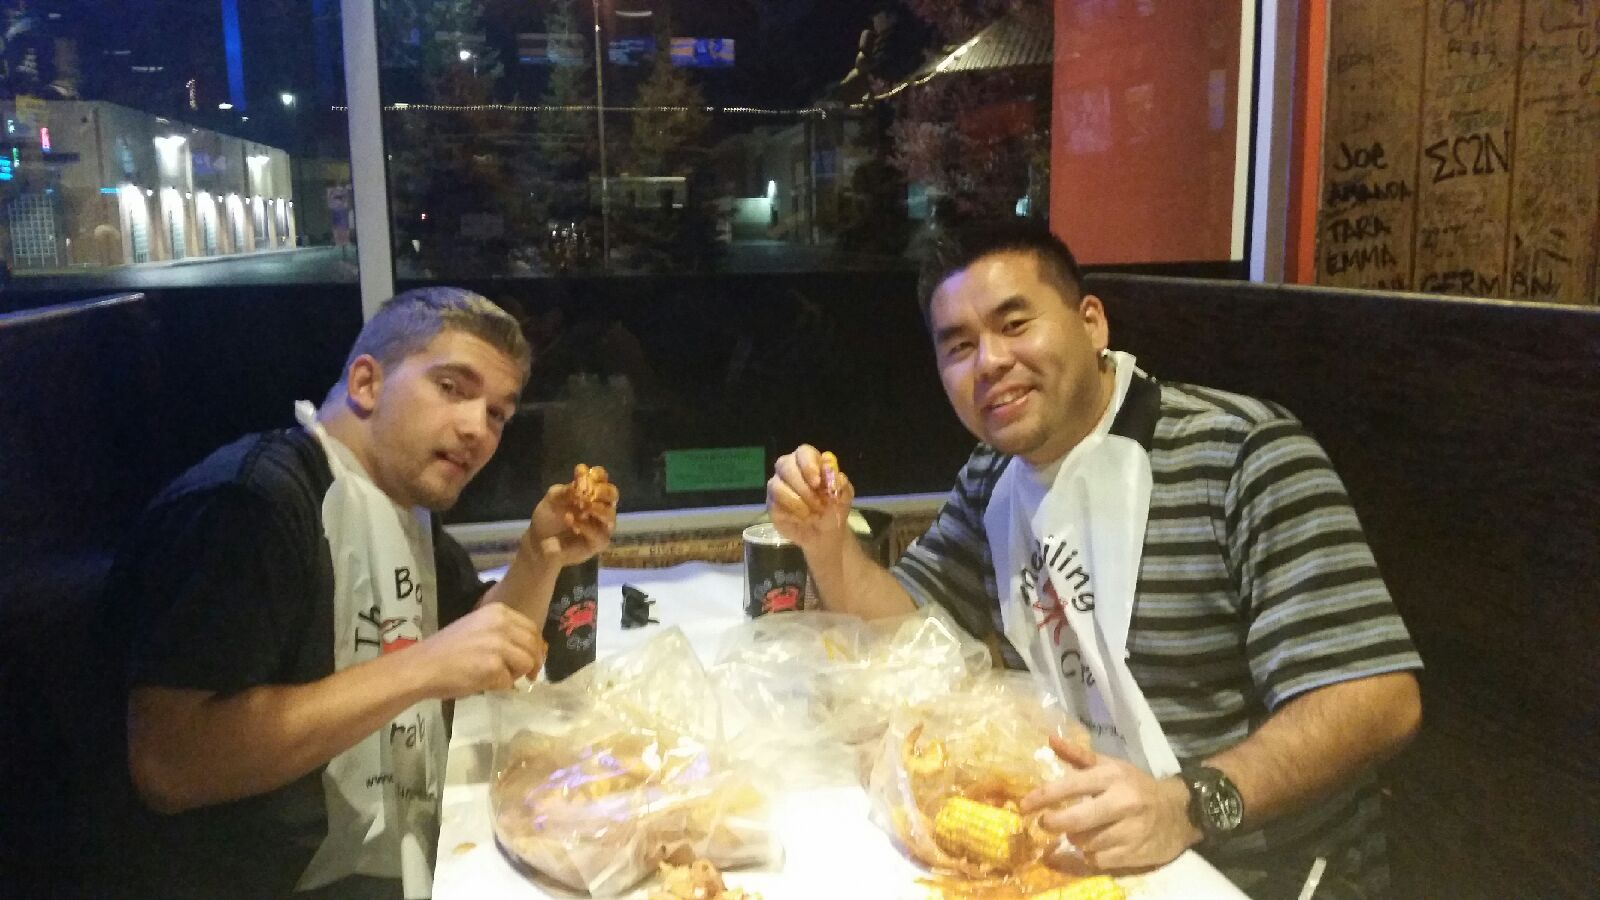 The Boiling Crab - All you can eat Crab Bake!!  Sacramento, Ca